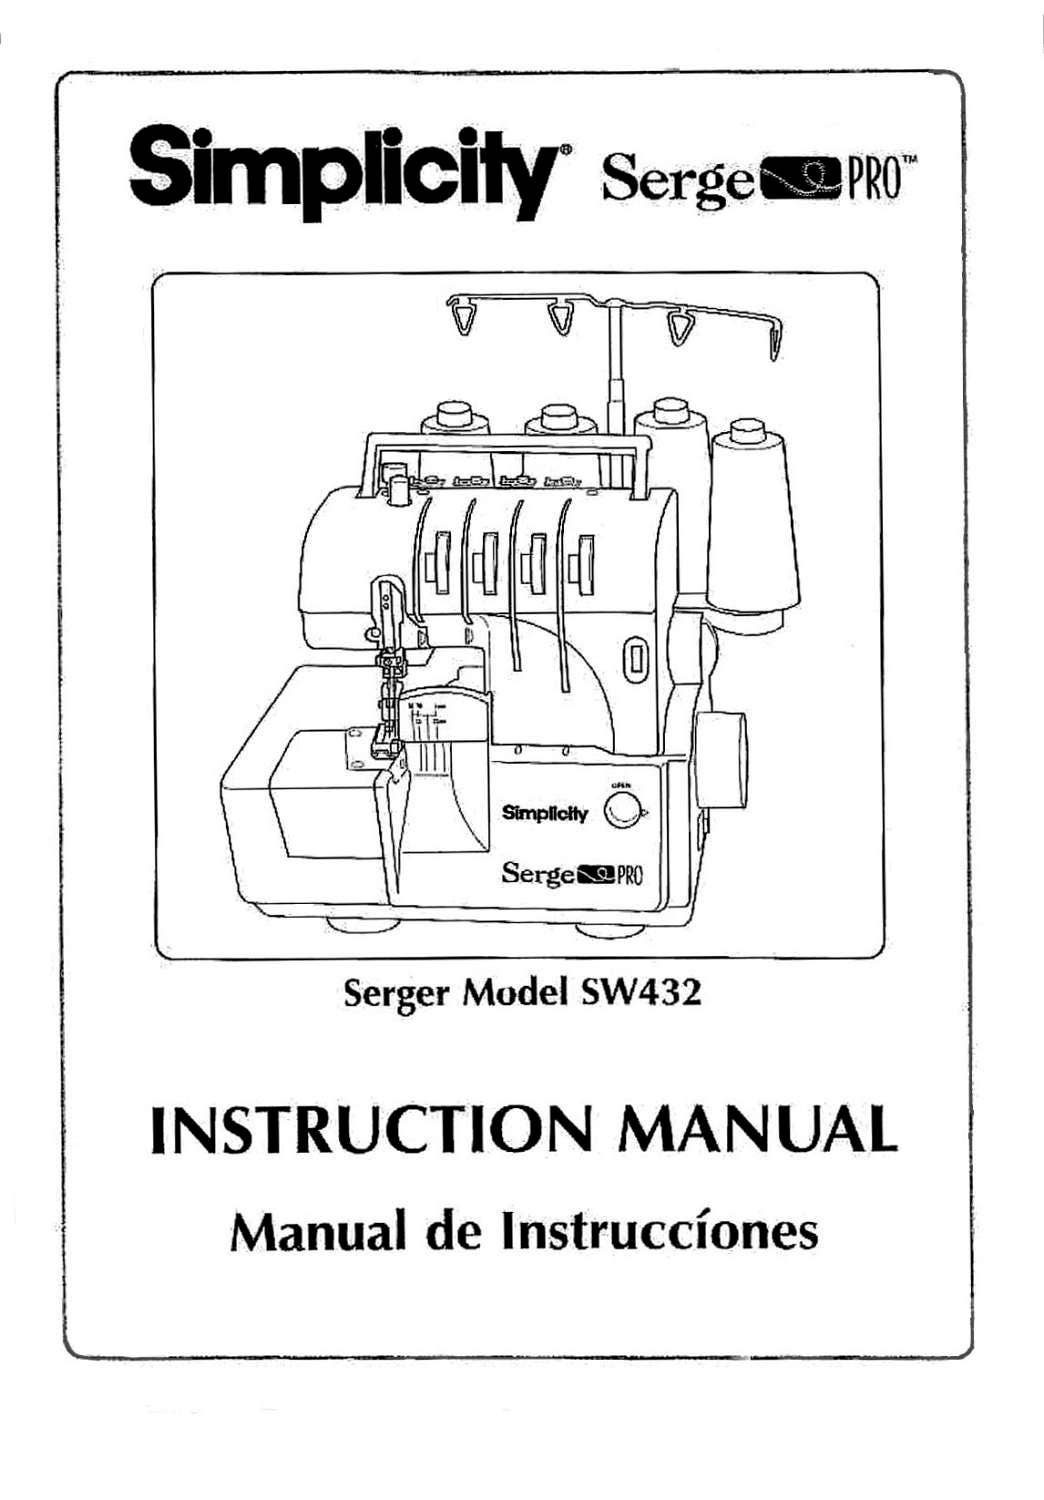 SIMPLICITY SW432 Serger / Serge PRO Instruction / Operating manual ...